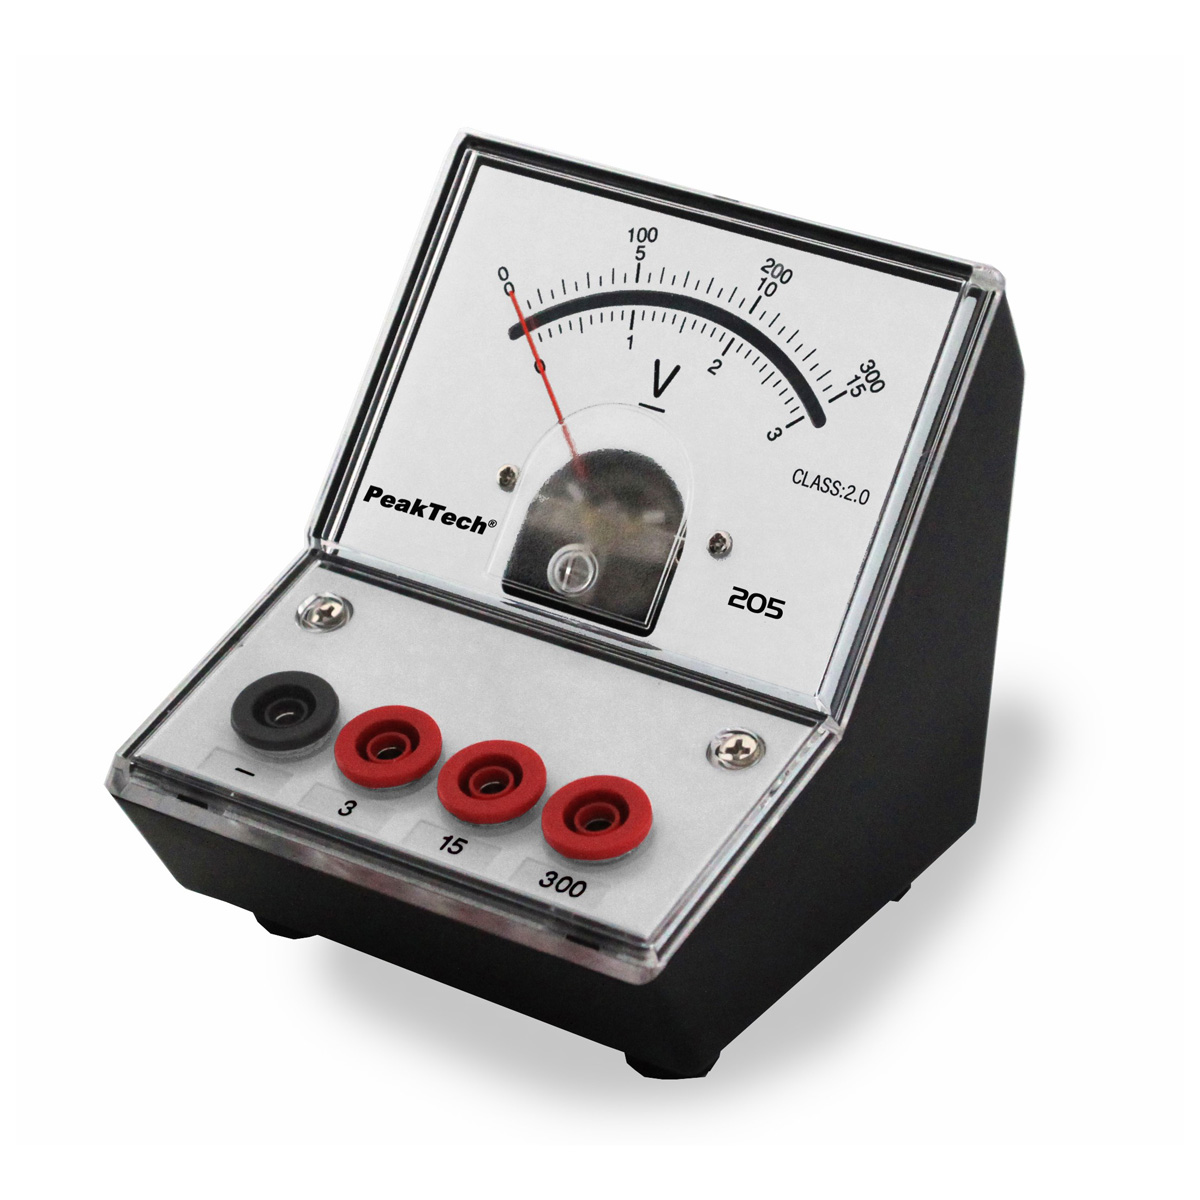 Dc Voltmeter 1002787 U11811 Peaktech,p_809_908 on Lab Equipment